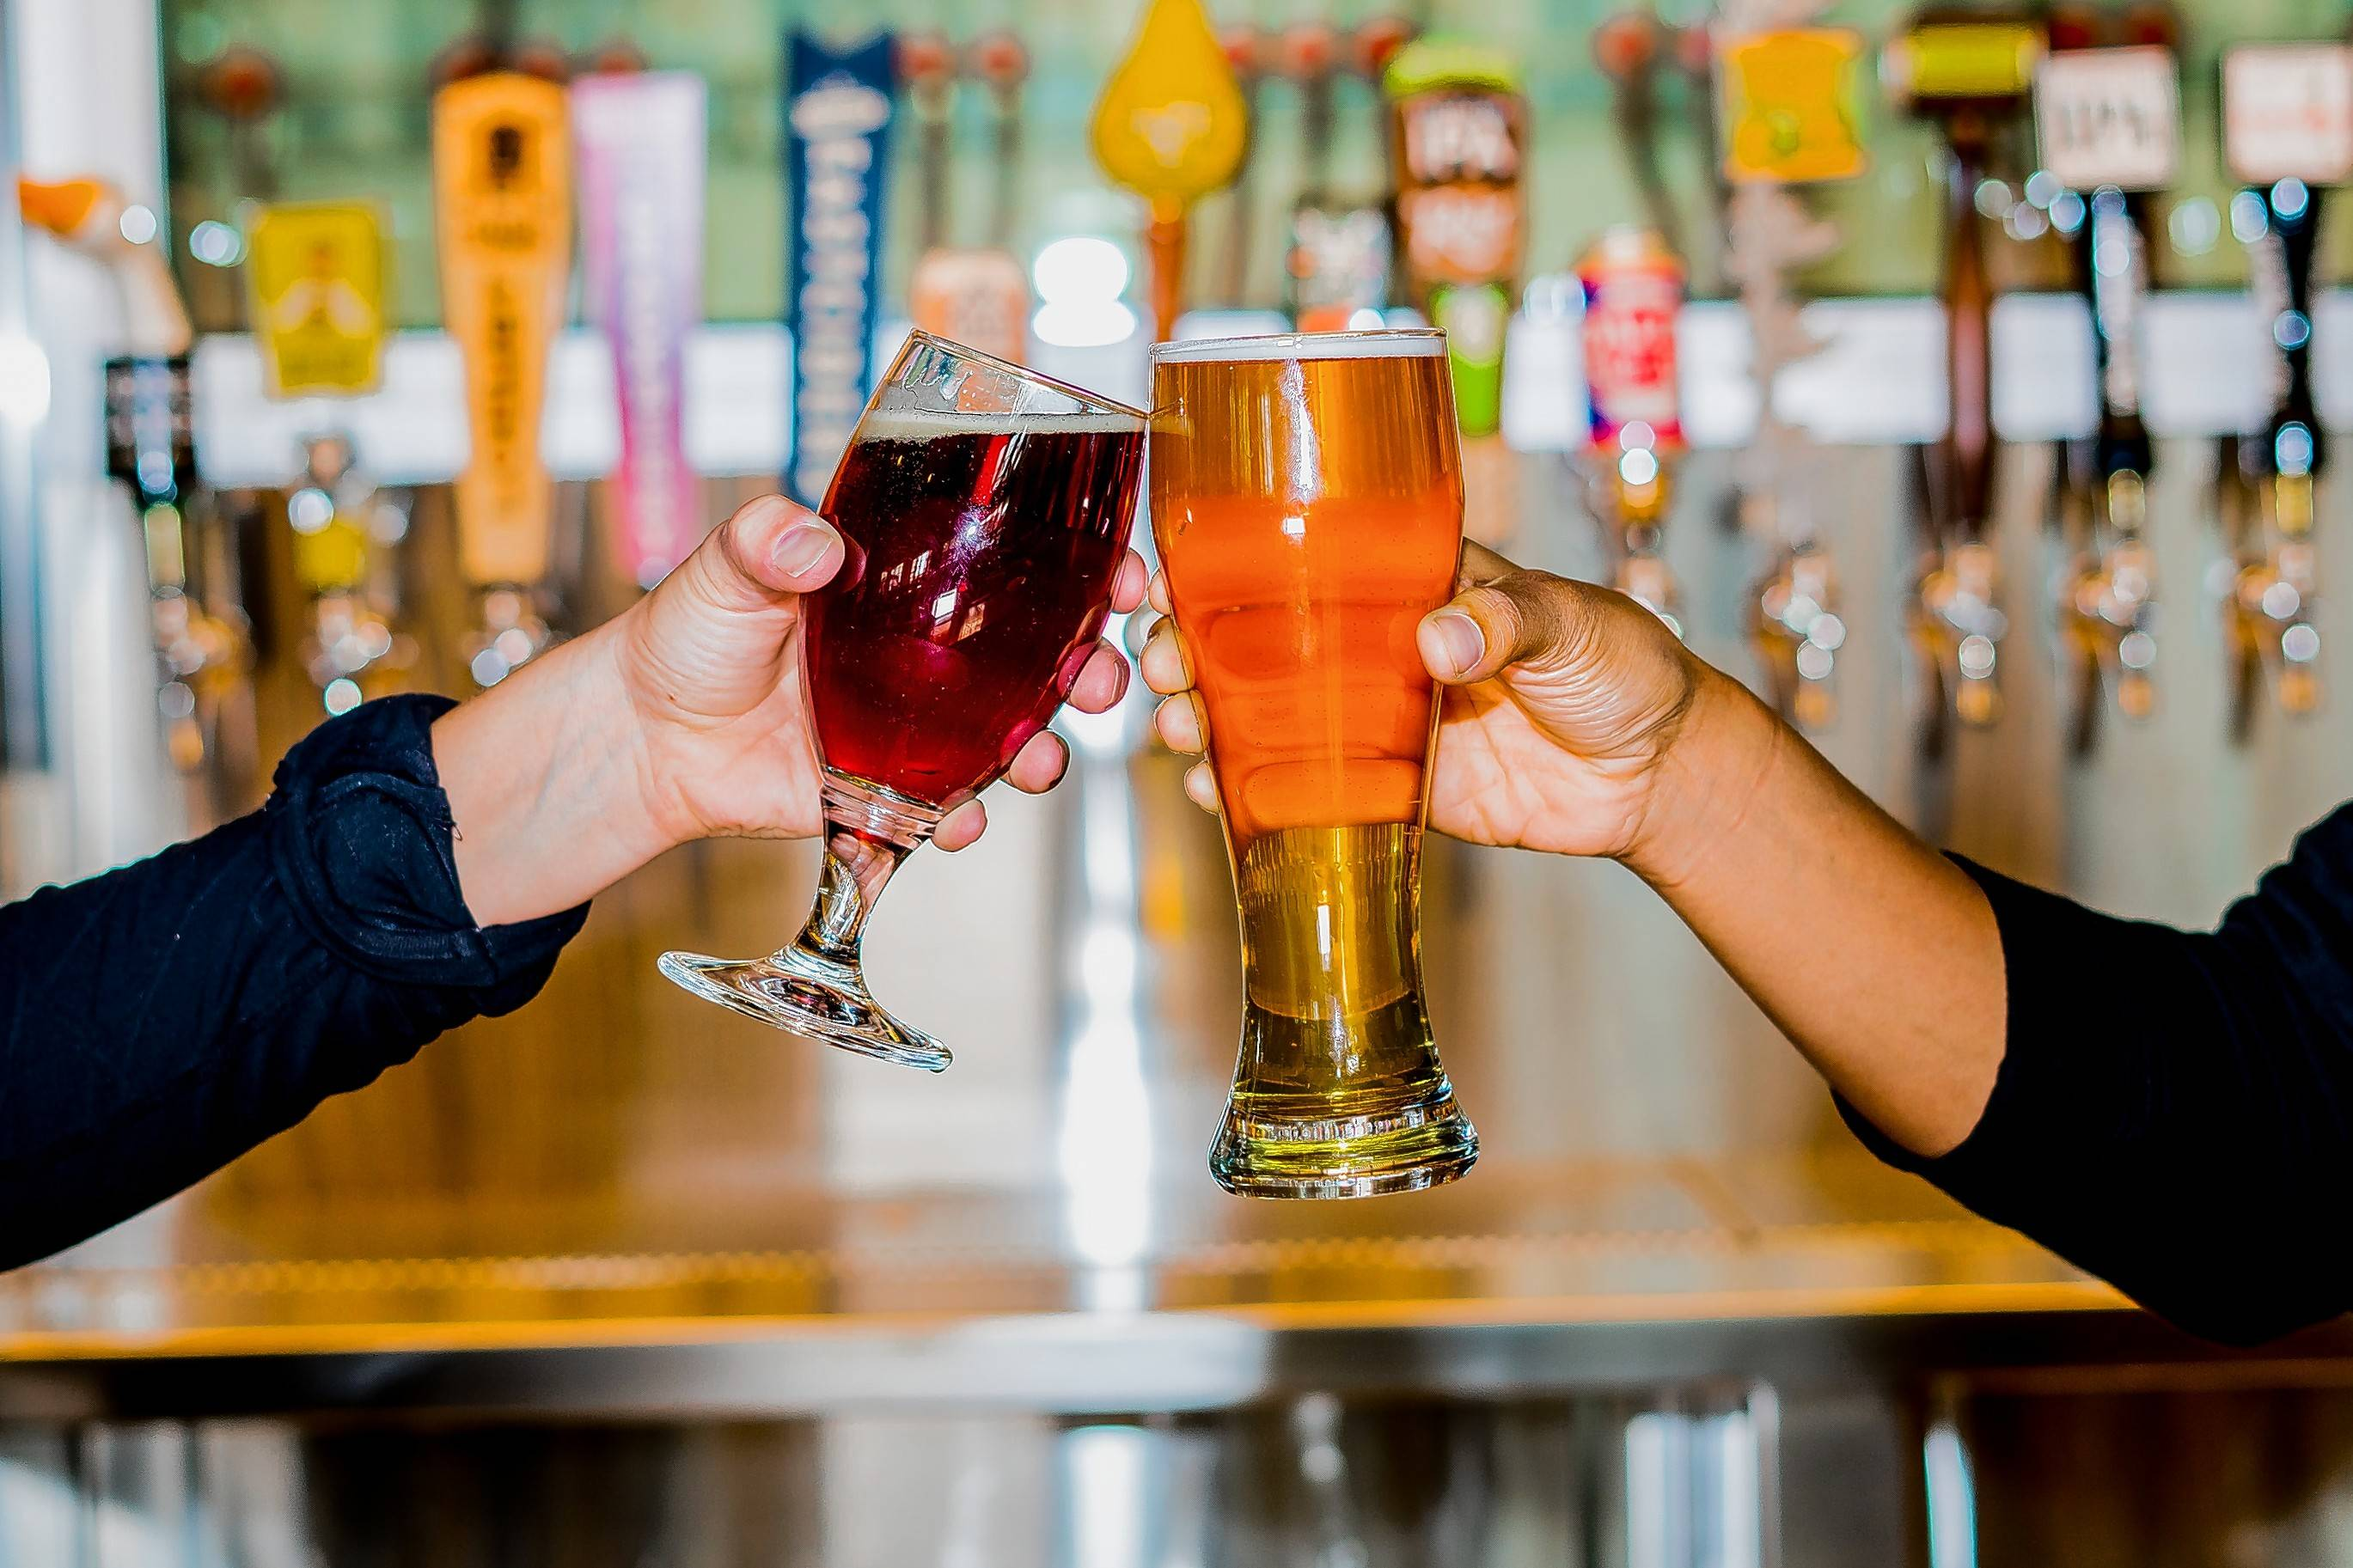 Raise a glass to St. Patrick's Day at Old Town Pour House in Naperville and Oak Brook.